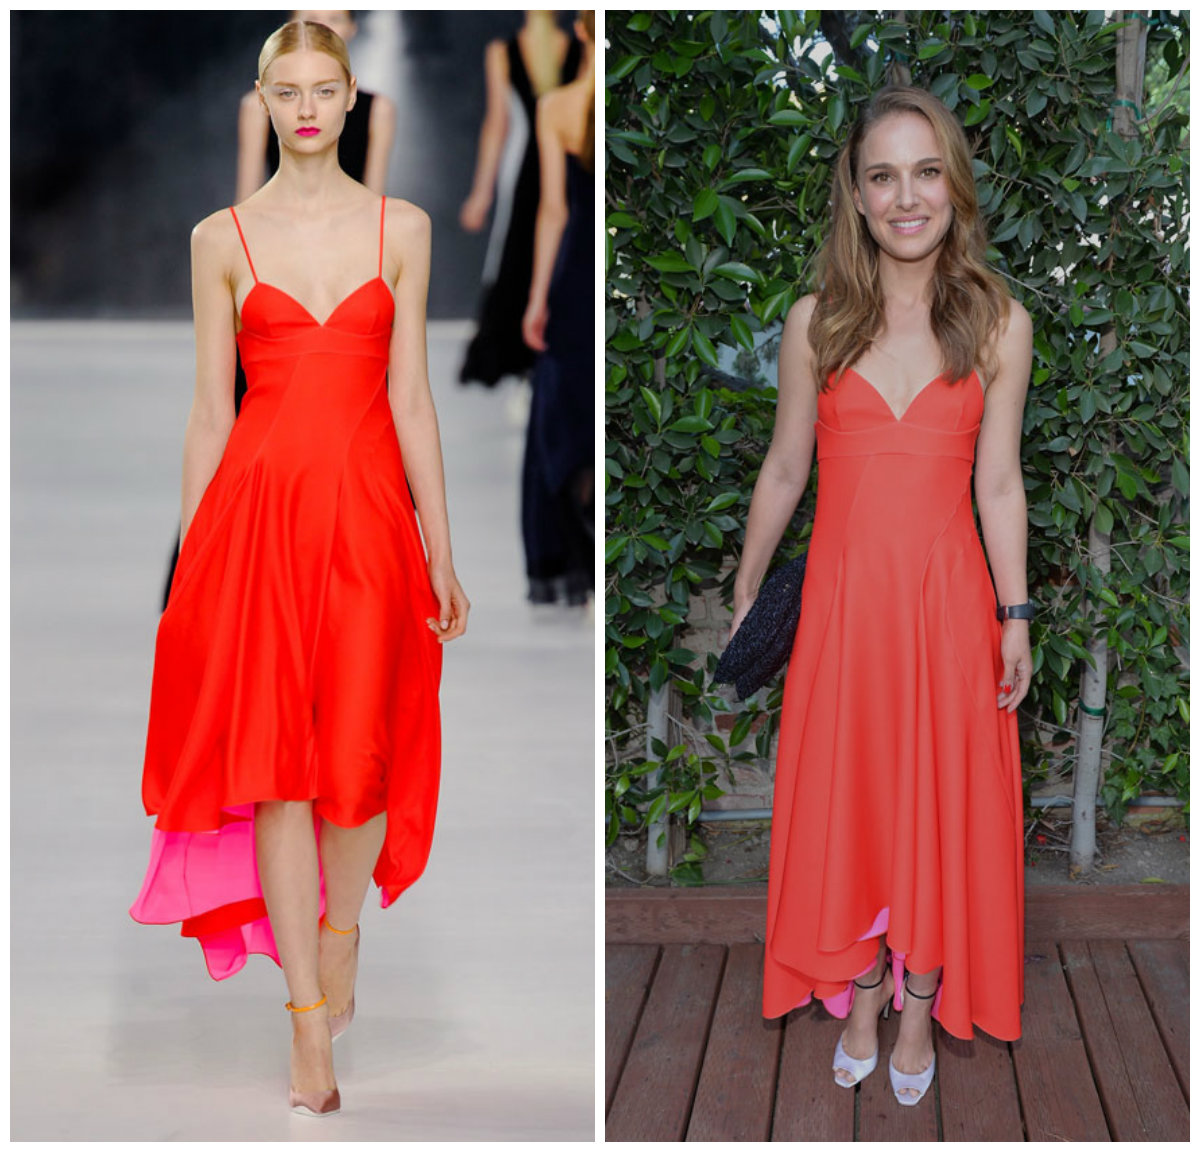 Natalie Portman en robe de cocktail rouge